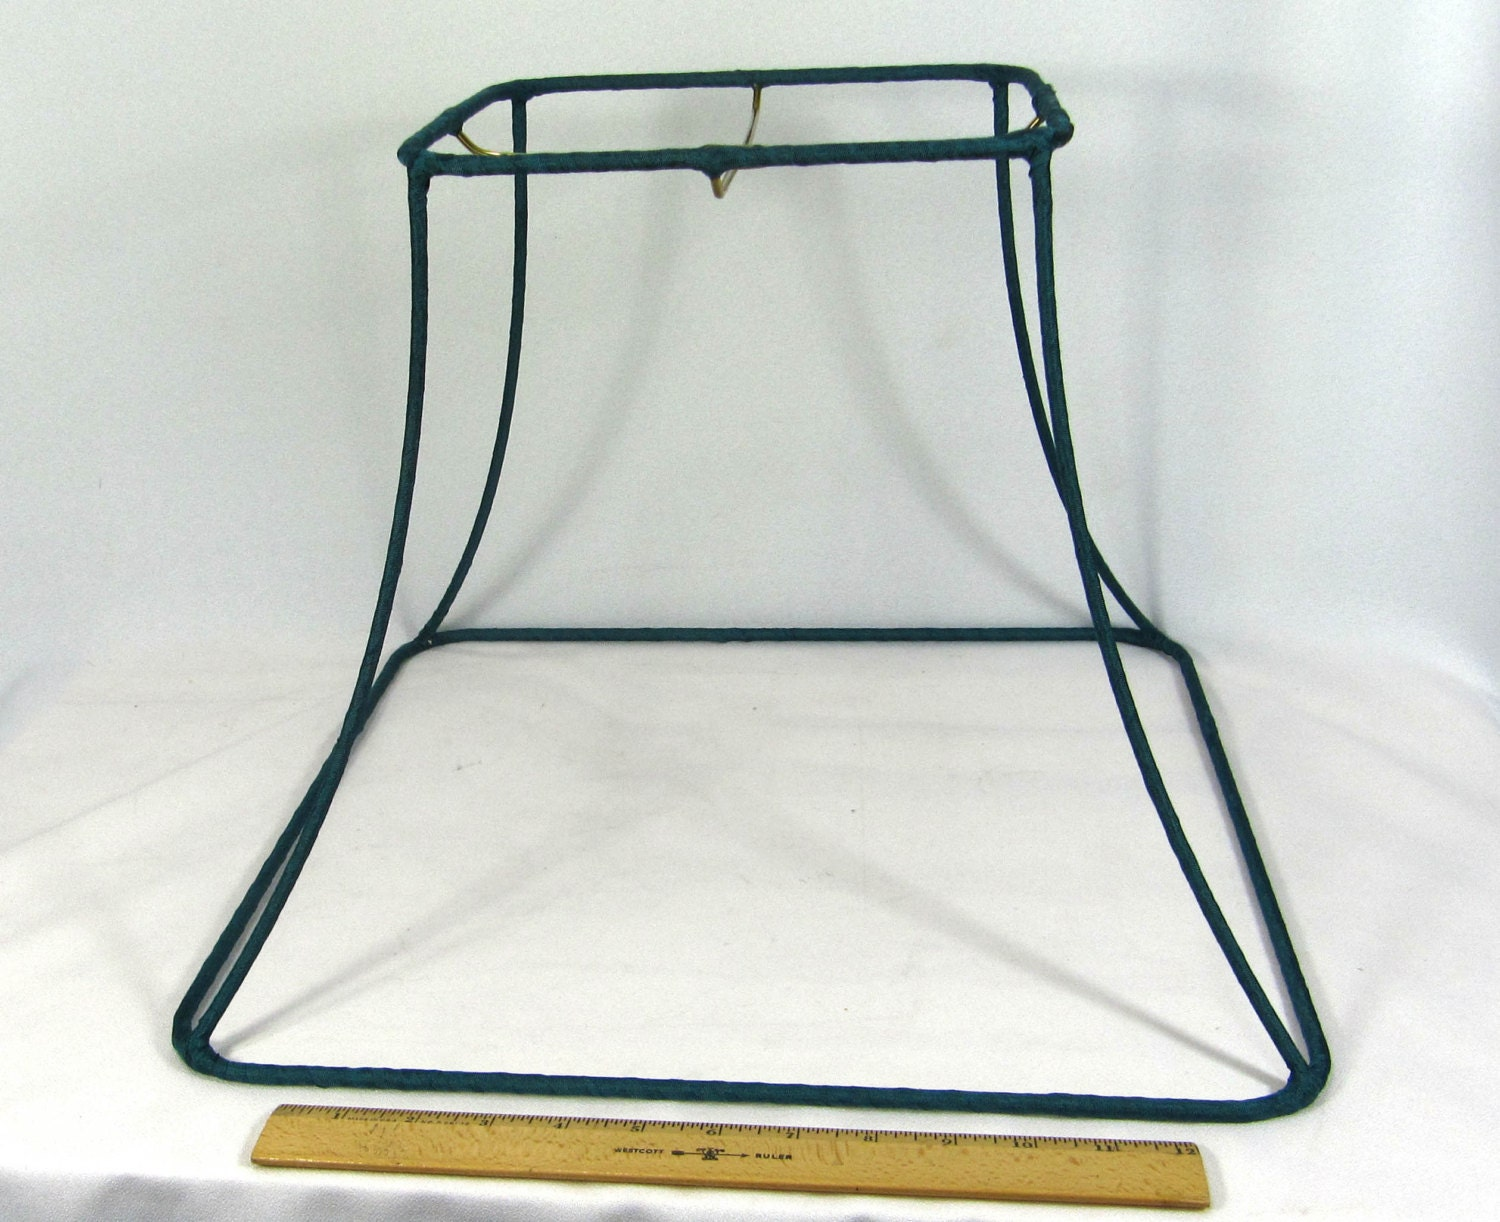 lamp shade frame for floor table or pendant with green binding. Black Bedroom Furniture Sets. Home Design Ideas